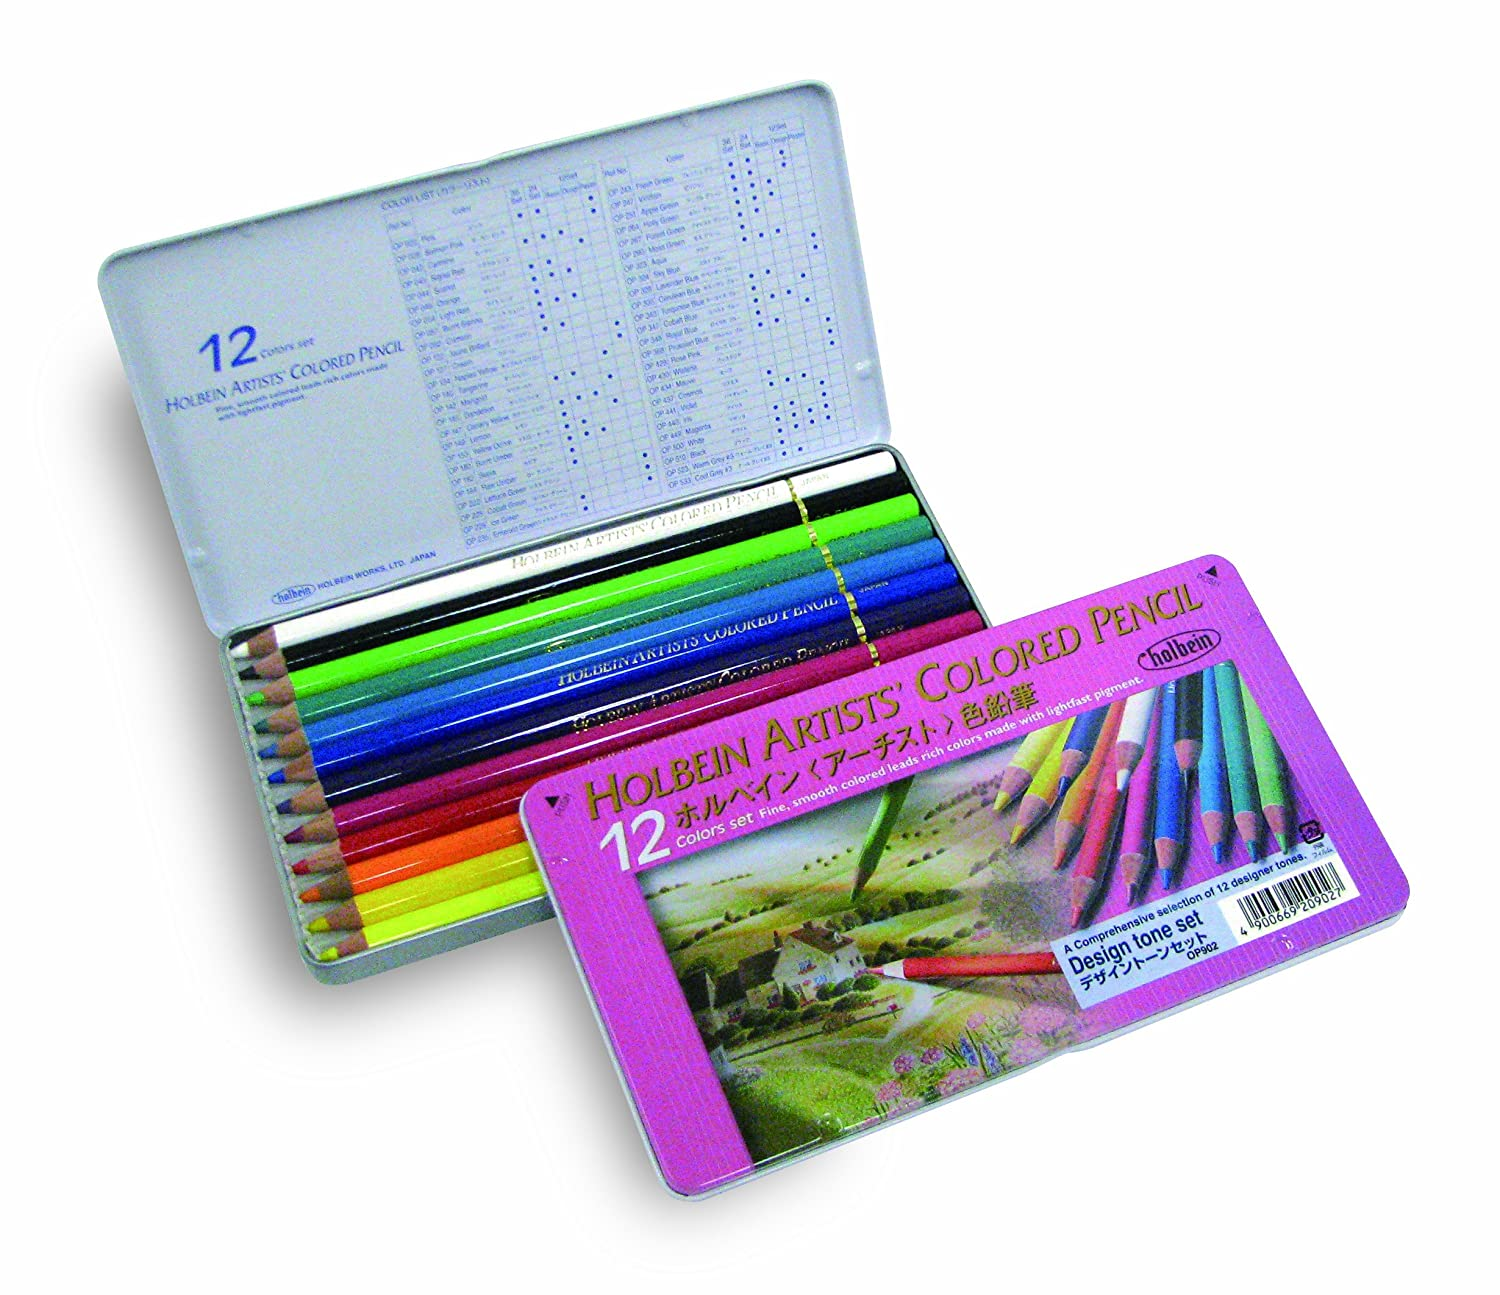 12 Farbe tone set design Holbein colGoldt pencil (japan import) B001GQ37XY | Sale Outlet